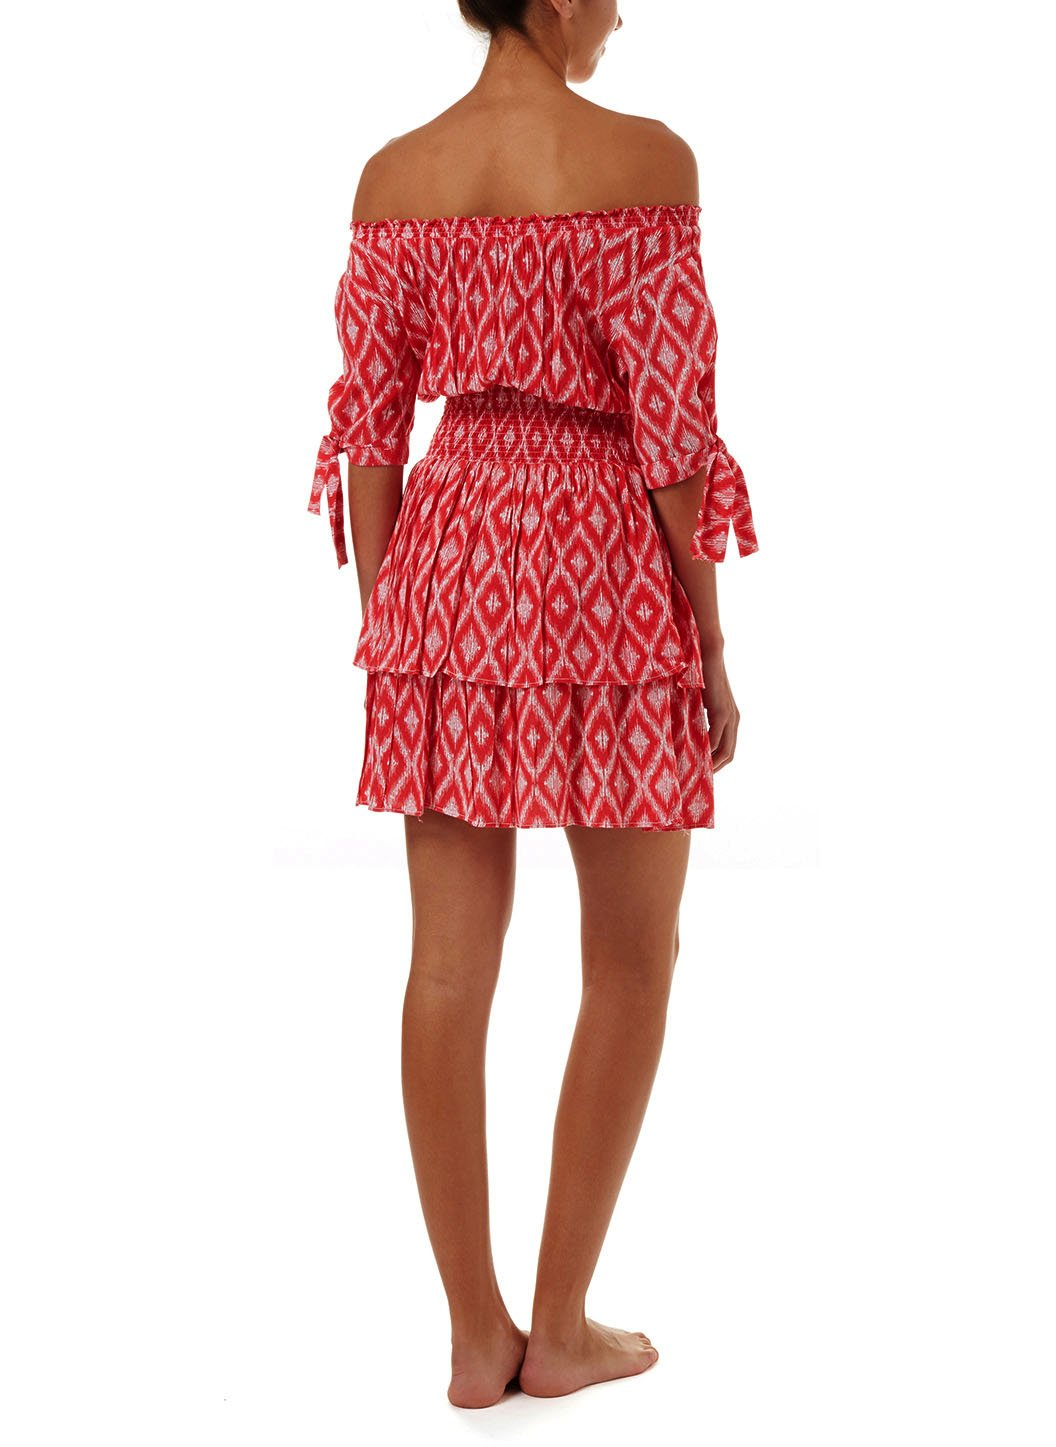 camilla red ikat offtheshoulder short dress 2019 B